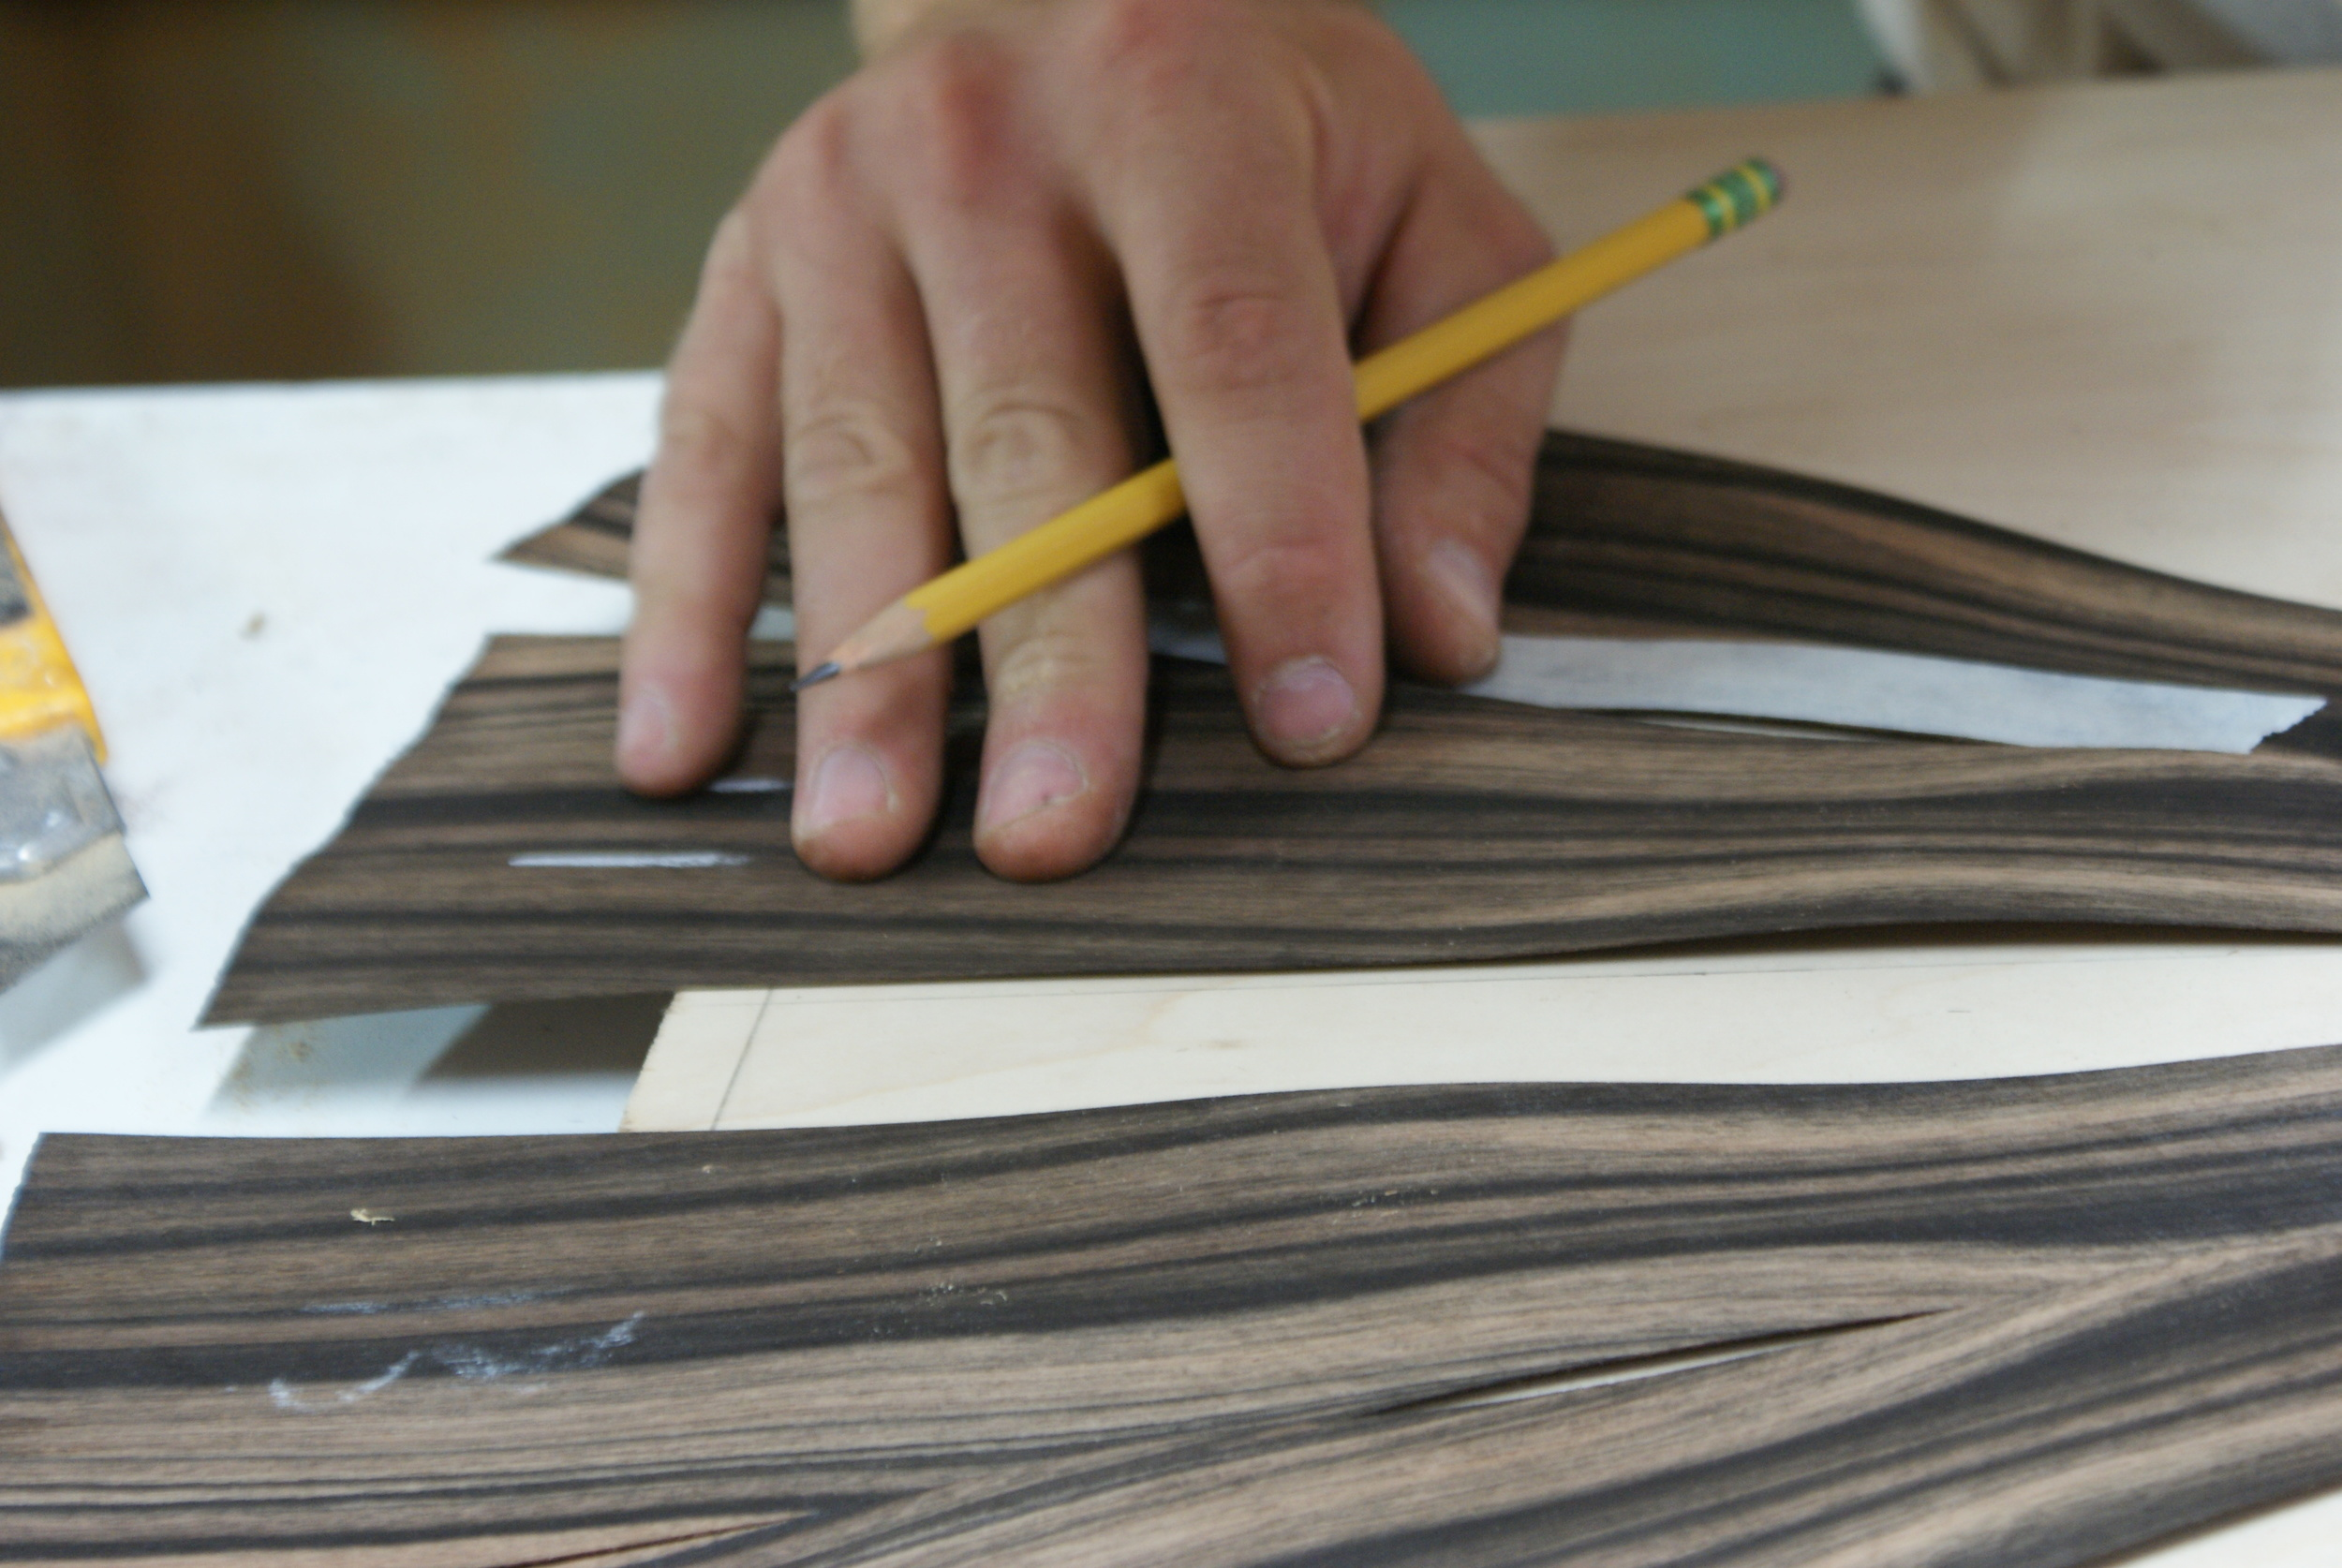 Sequenced veneer pieces are matched to the pattern drawn on the wood core.